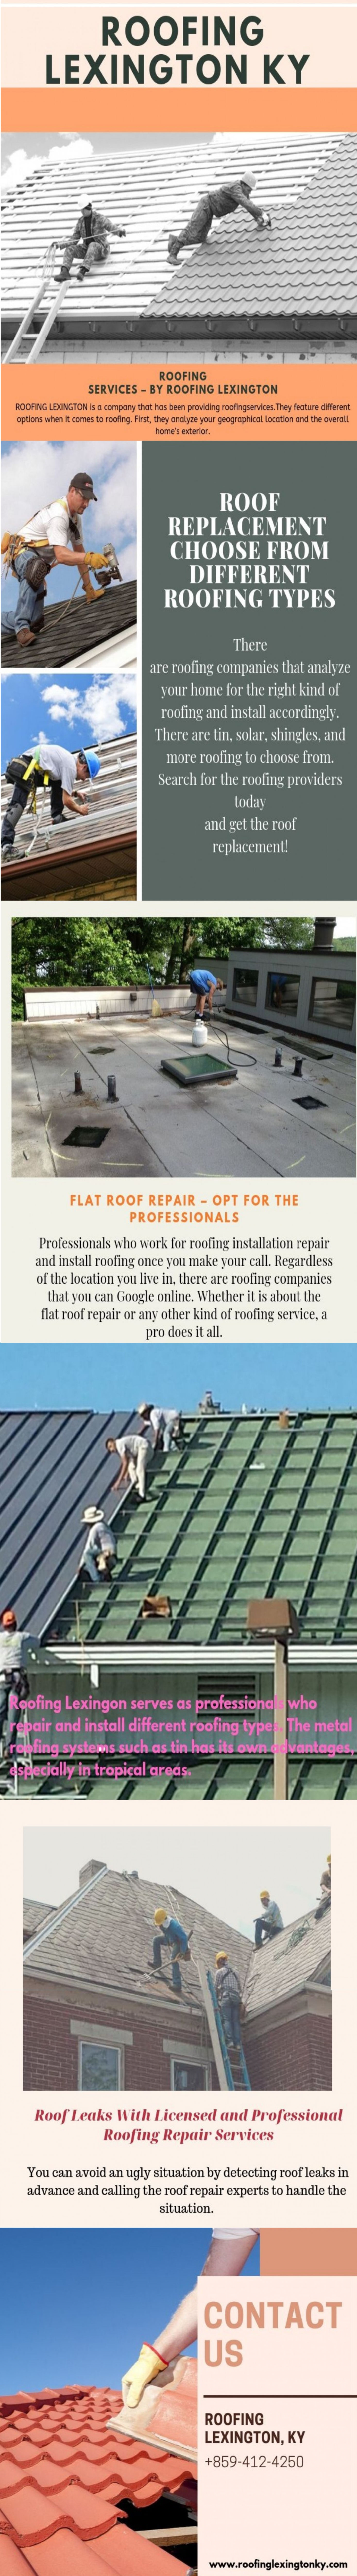 Roofing Services – By ROOFING LEXINGTON Infographic